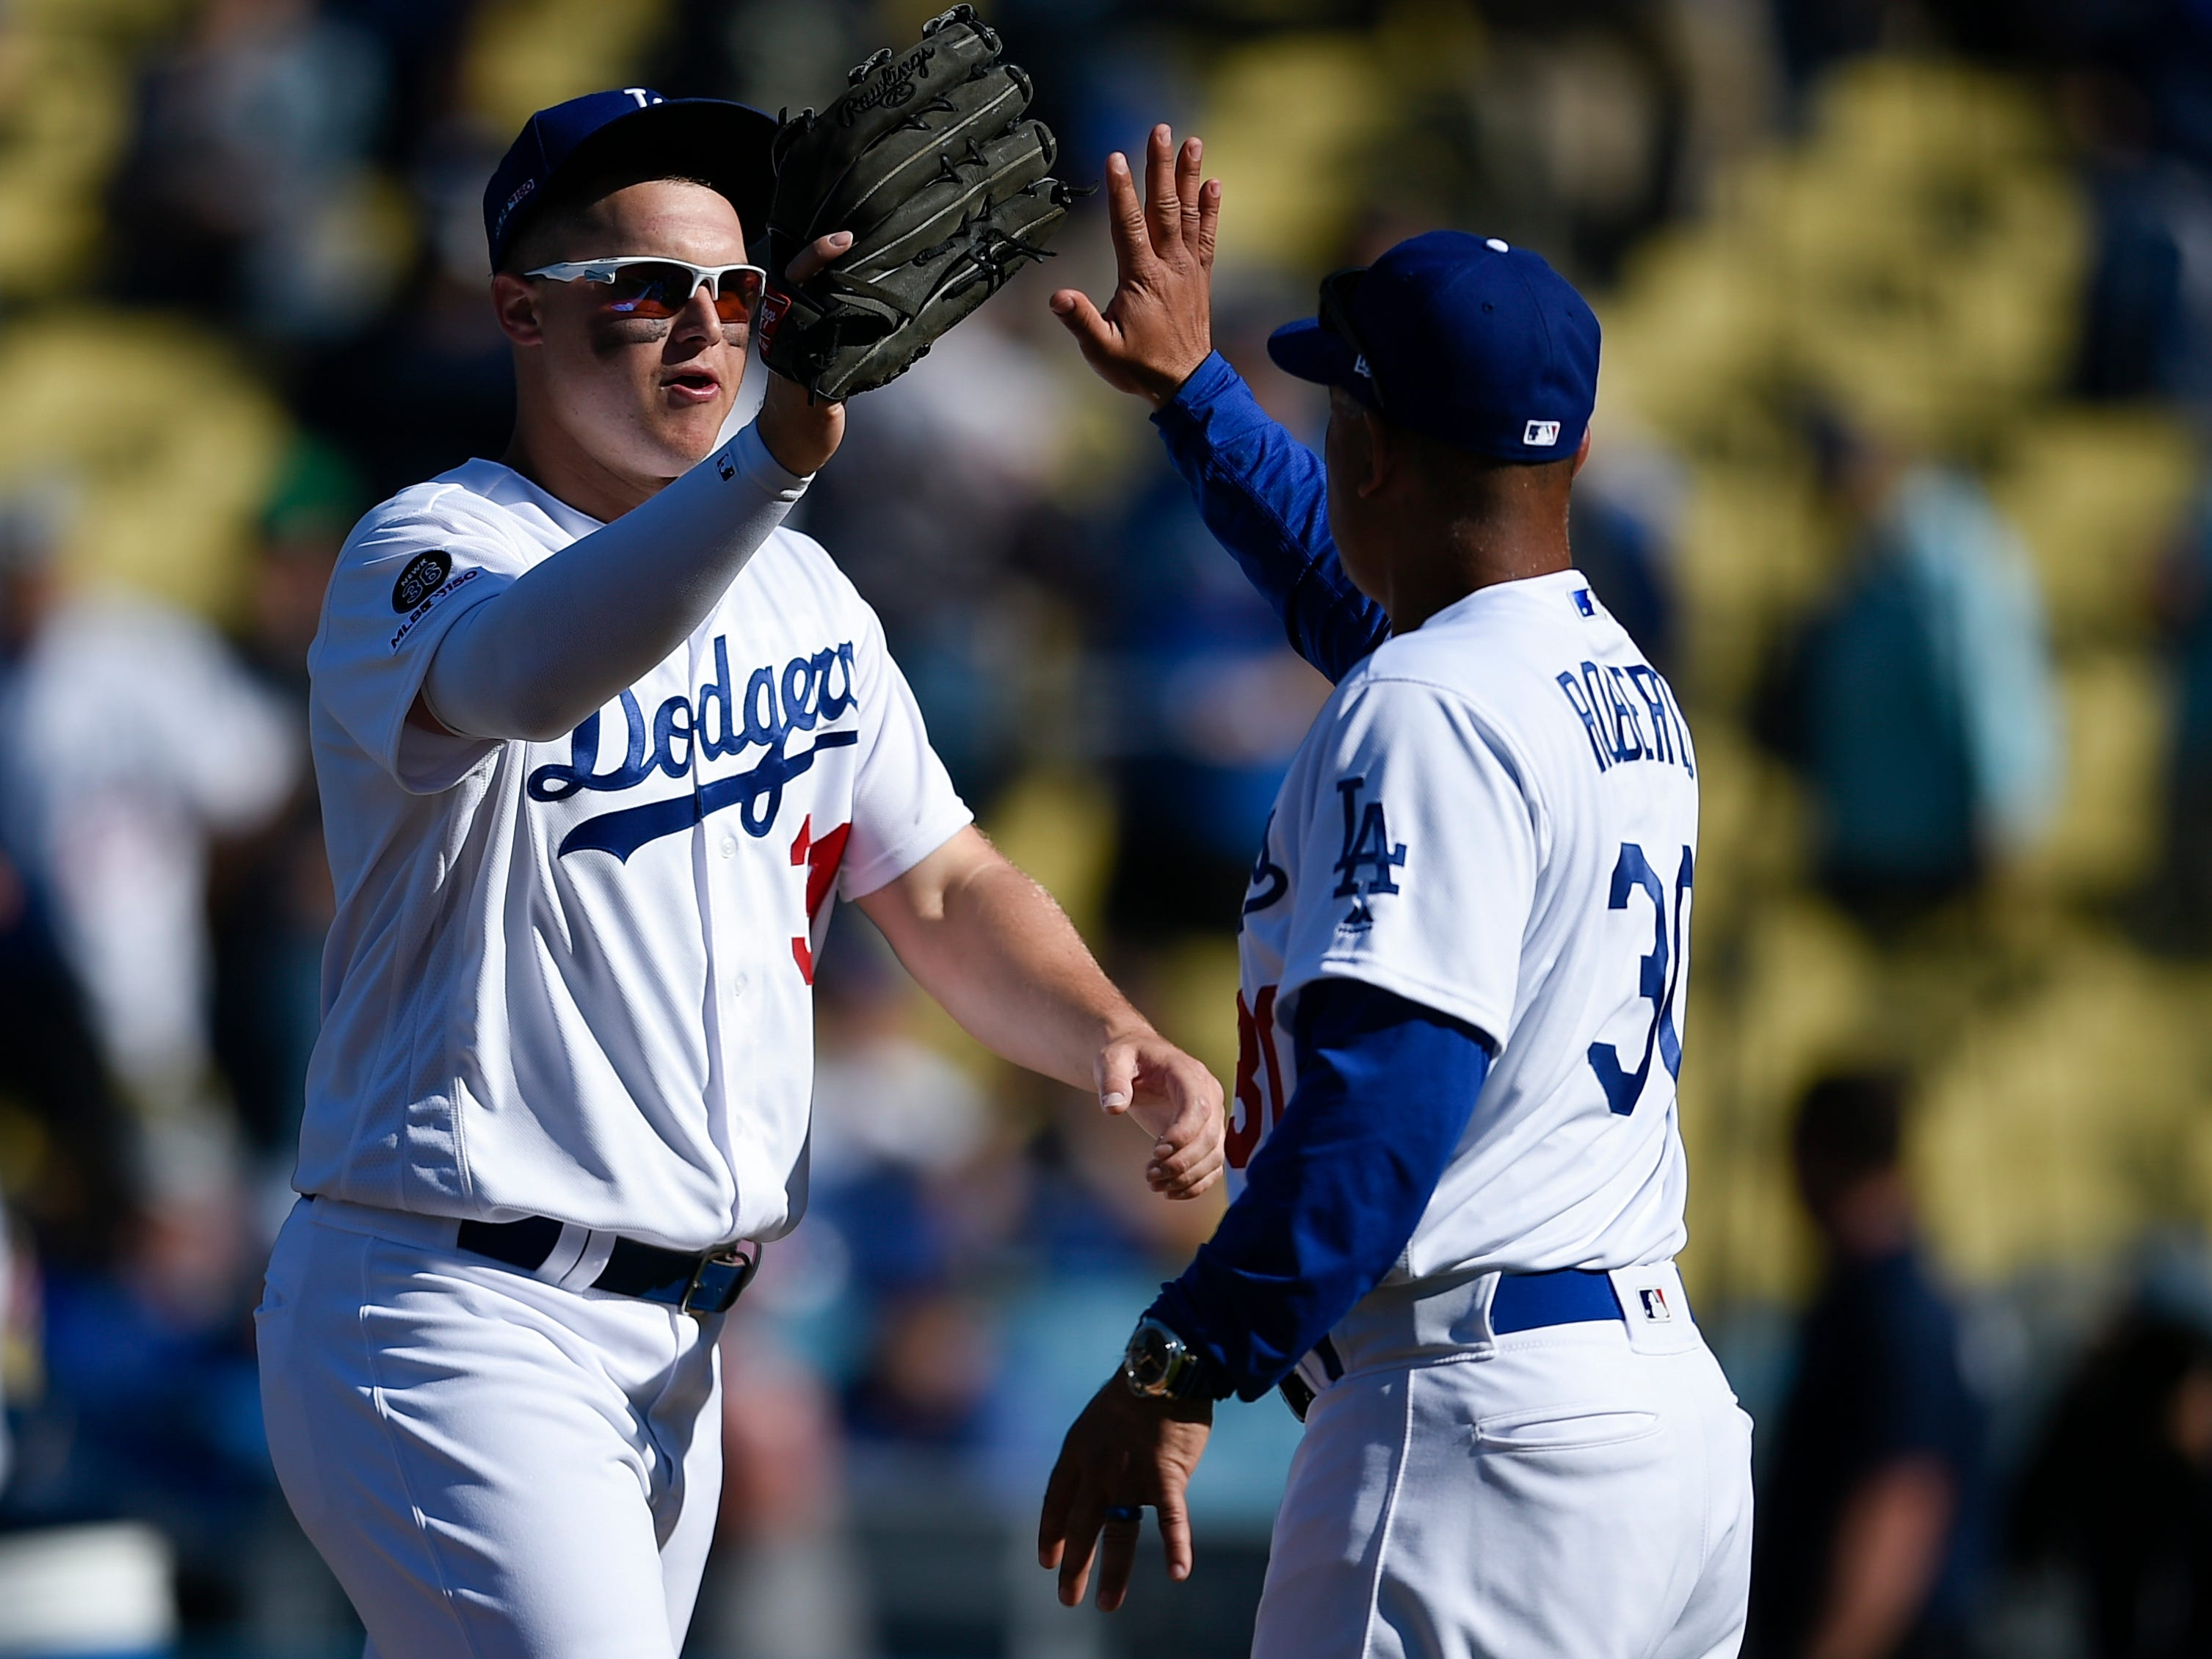 Mar 28, 2019; Los Angeles, CA, USA; Los Angeles Dodgers left fielder Joc Pederson (31) celebrates with manager Dave Roberts (right) after the game against the Arizona Diamondbacks at Dodger Stadium.